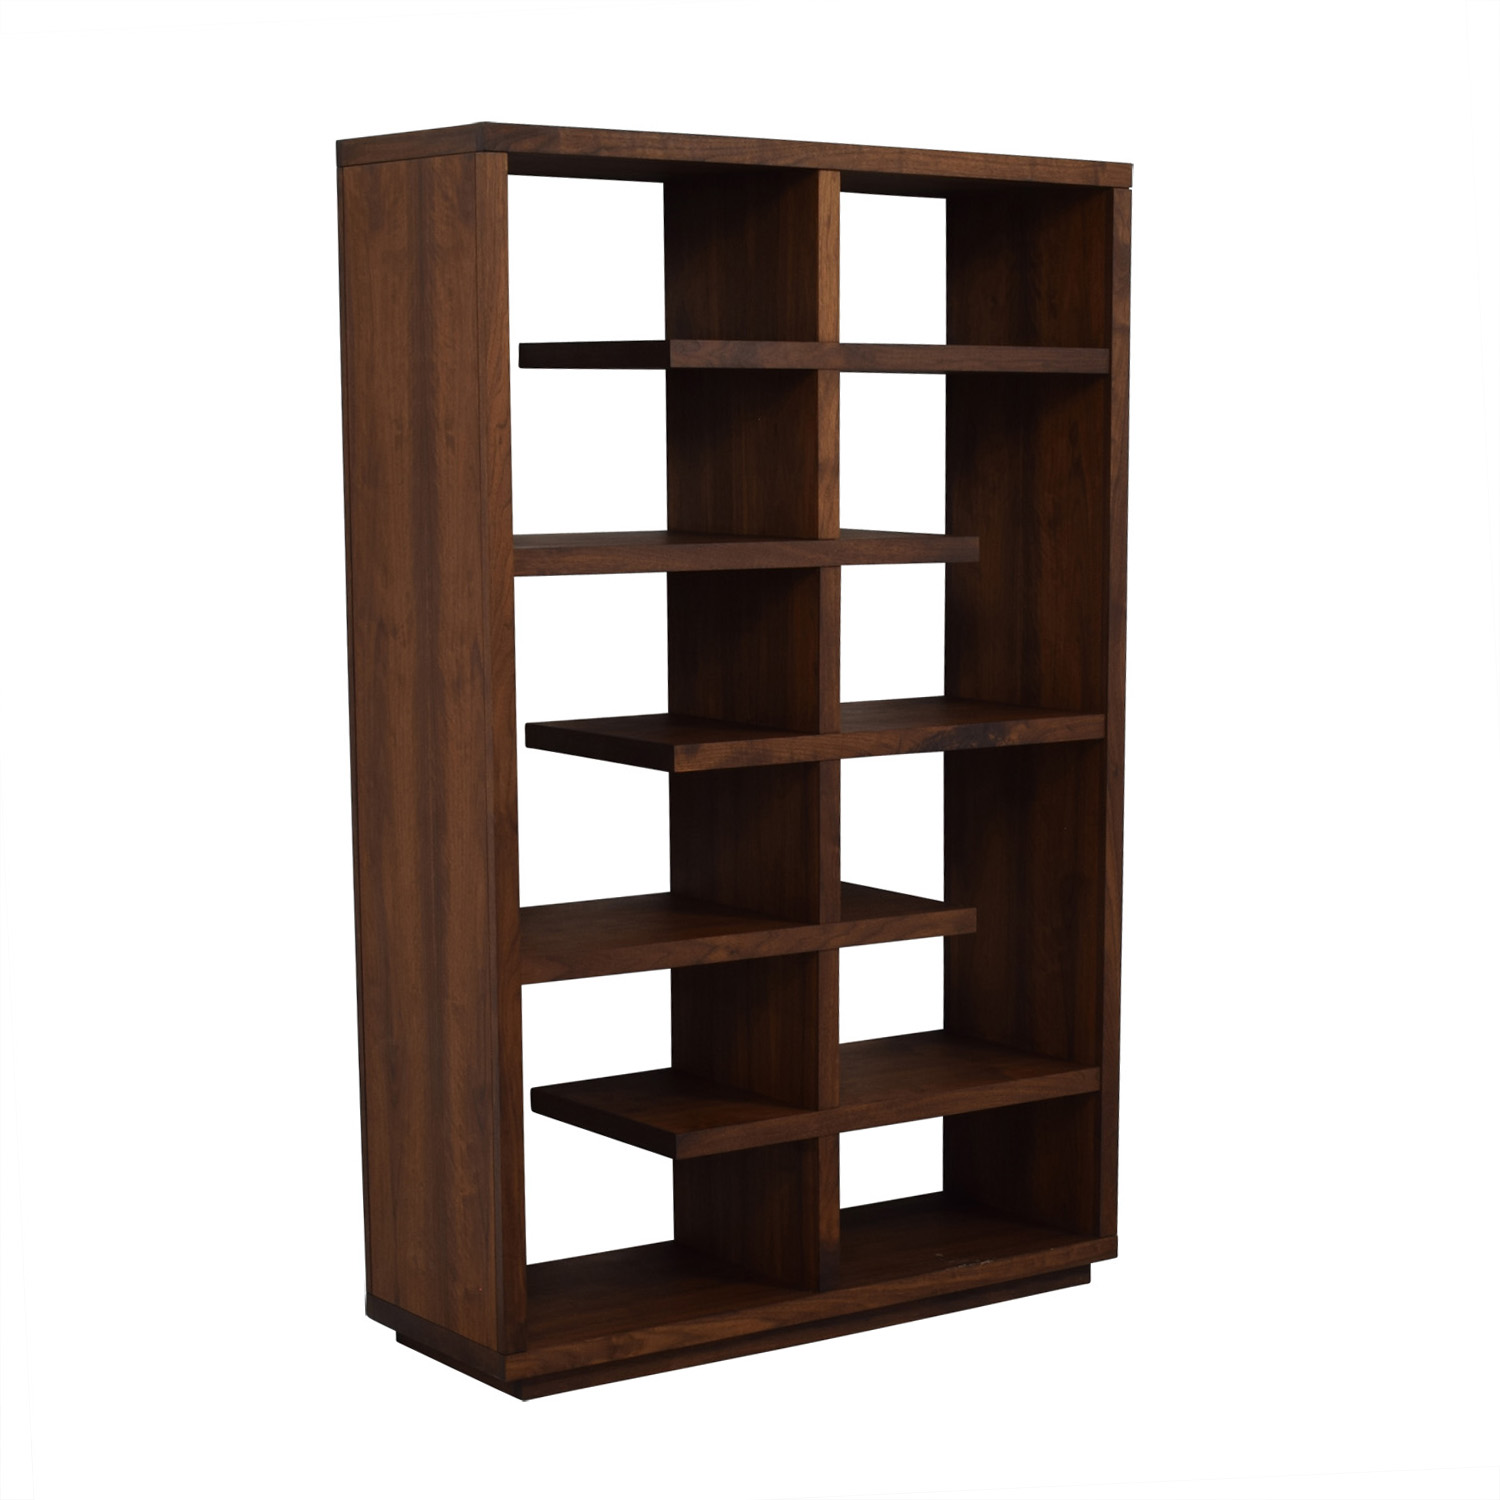 Crate & Barrel Elevate Walnut Bookcase Storage